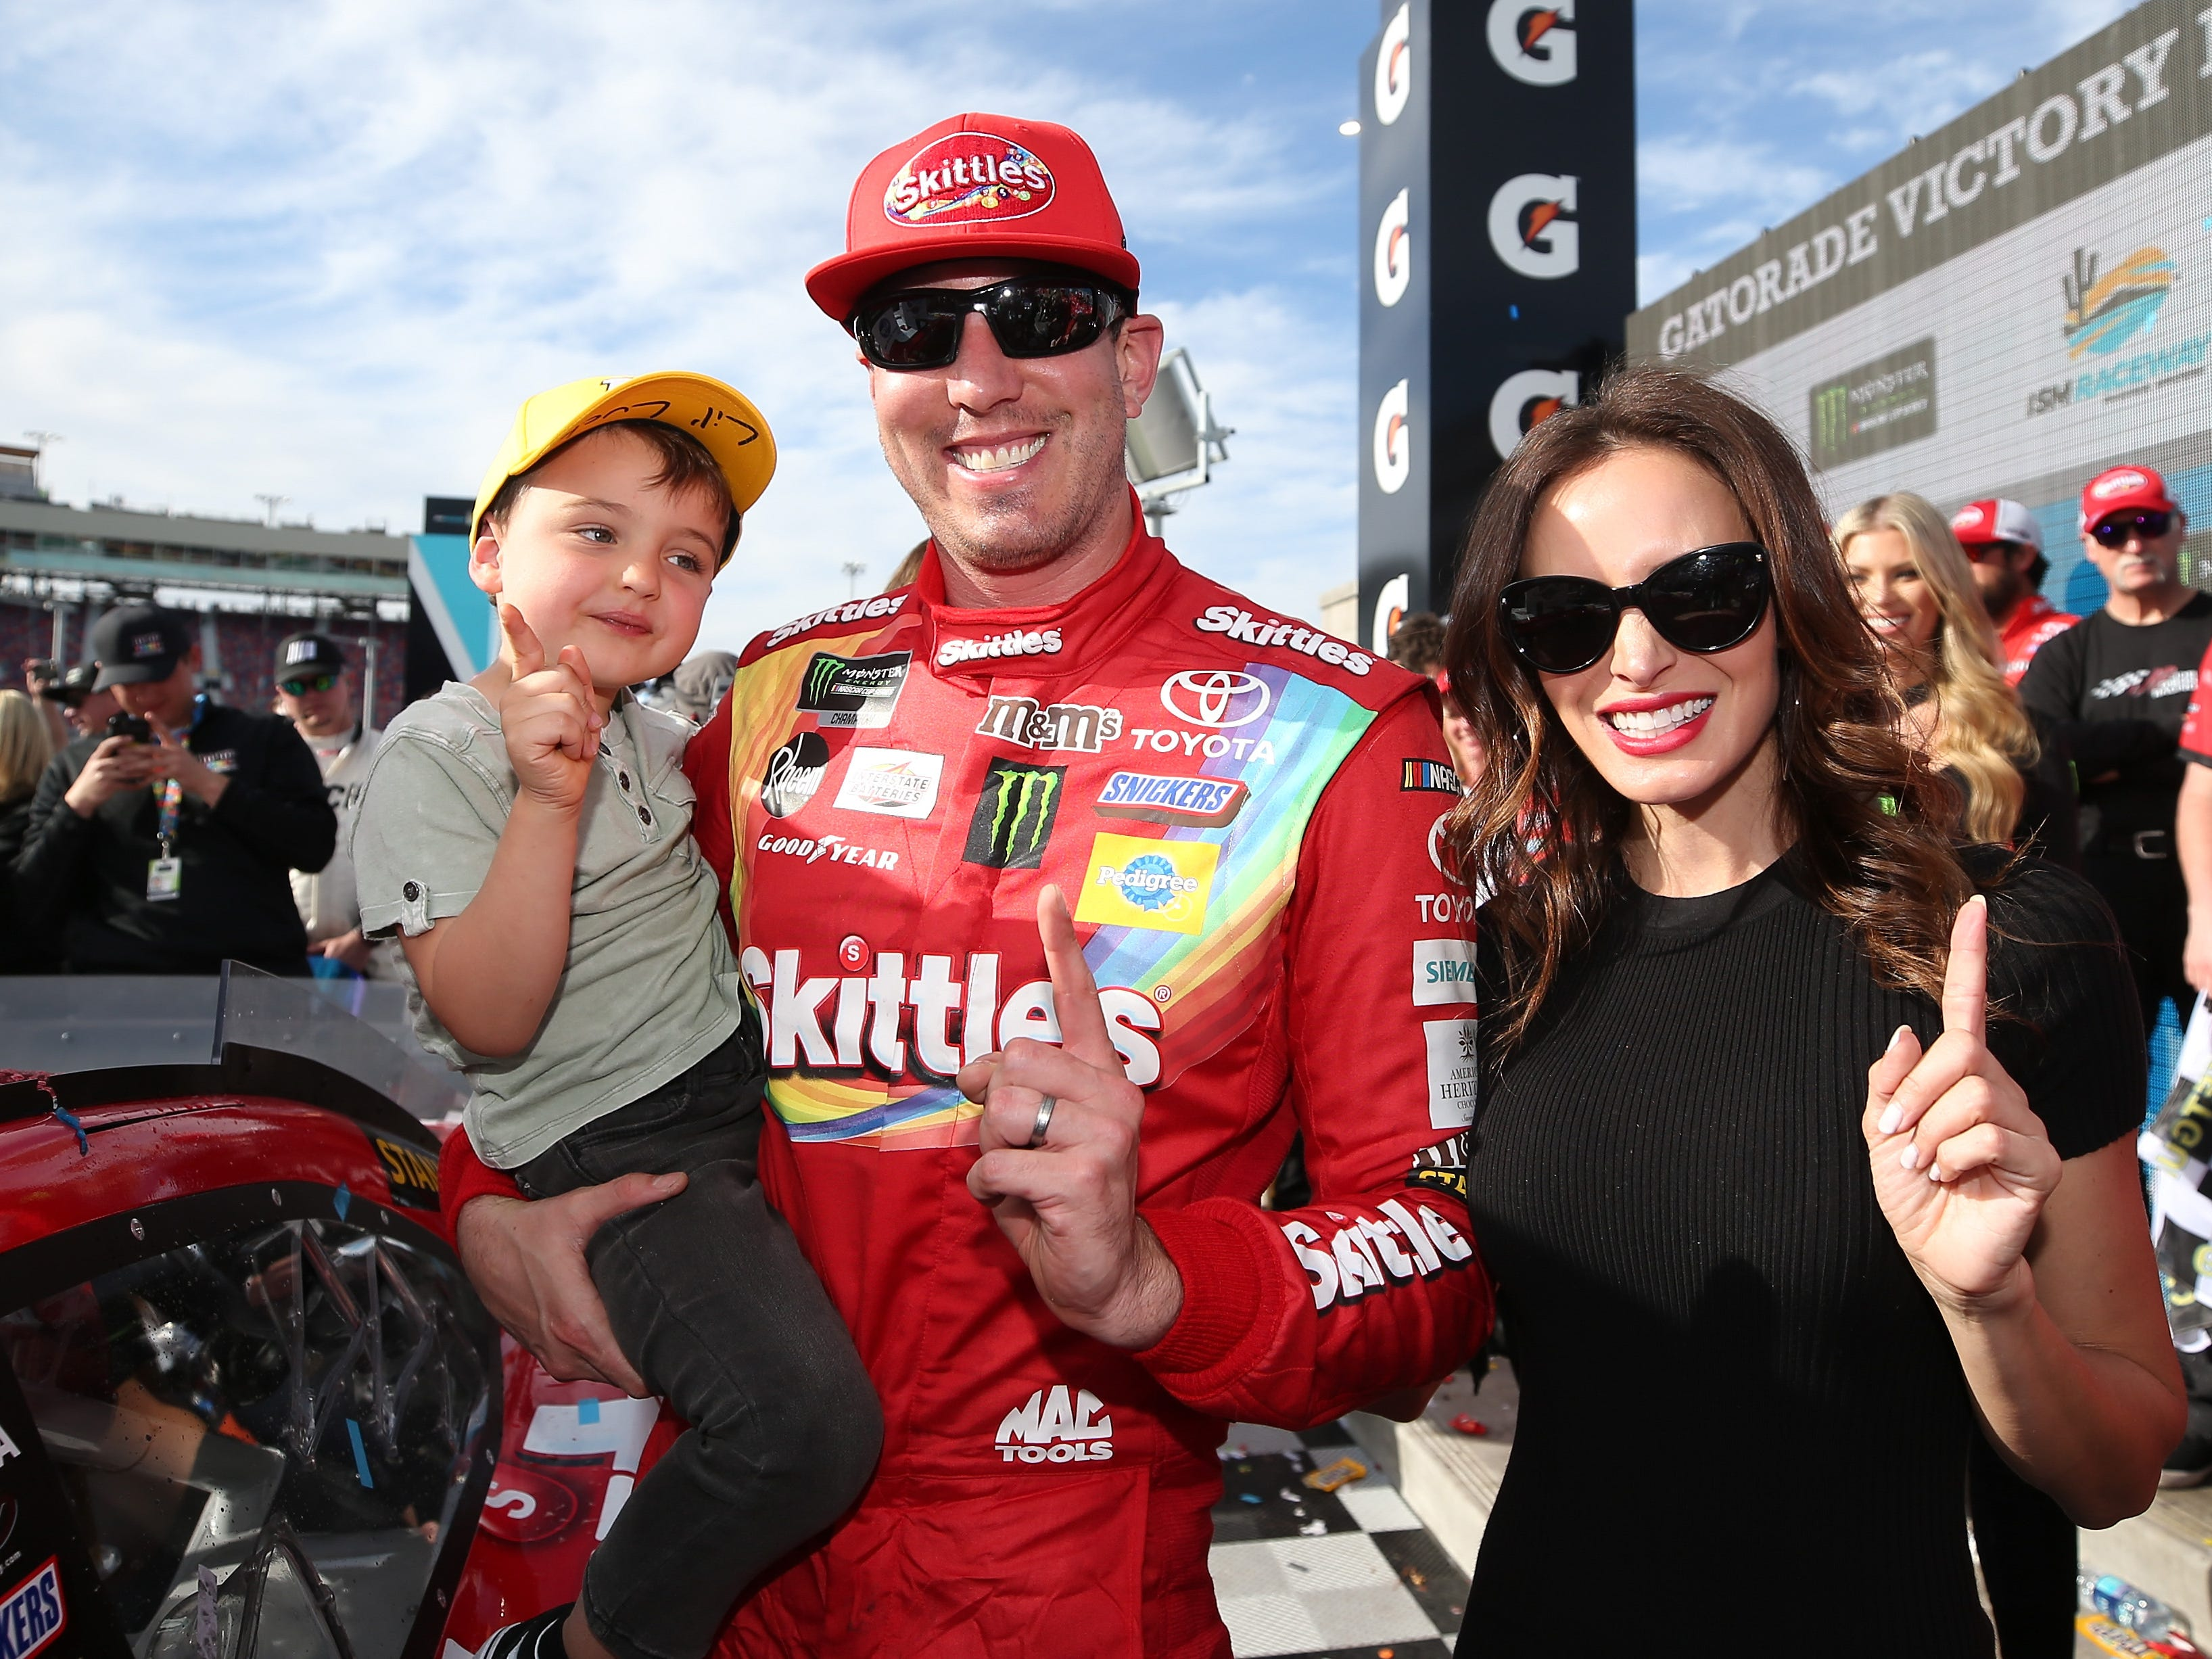 AVONDALE, AZ - MARCH 10:  Kyle Busch, driver of the #18 Skittles Toyota, celebrates with his wife, Samantha, and son, Brexton, after winning the Monster Energy NASCAR Cup Series TicketGuardian 500 at ISM Raceway on March 10, 2019 in Avondale, Arizona.  (Photo by Matt Sullivan/Getty Images)